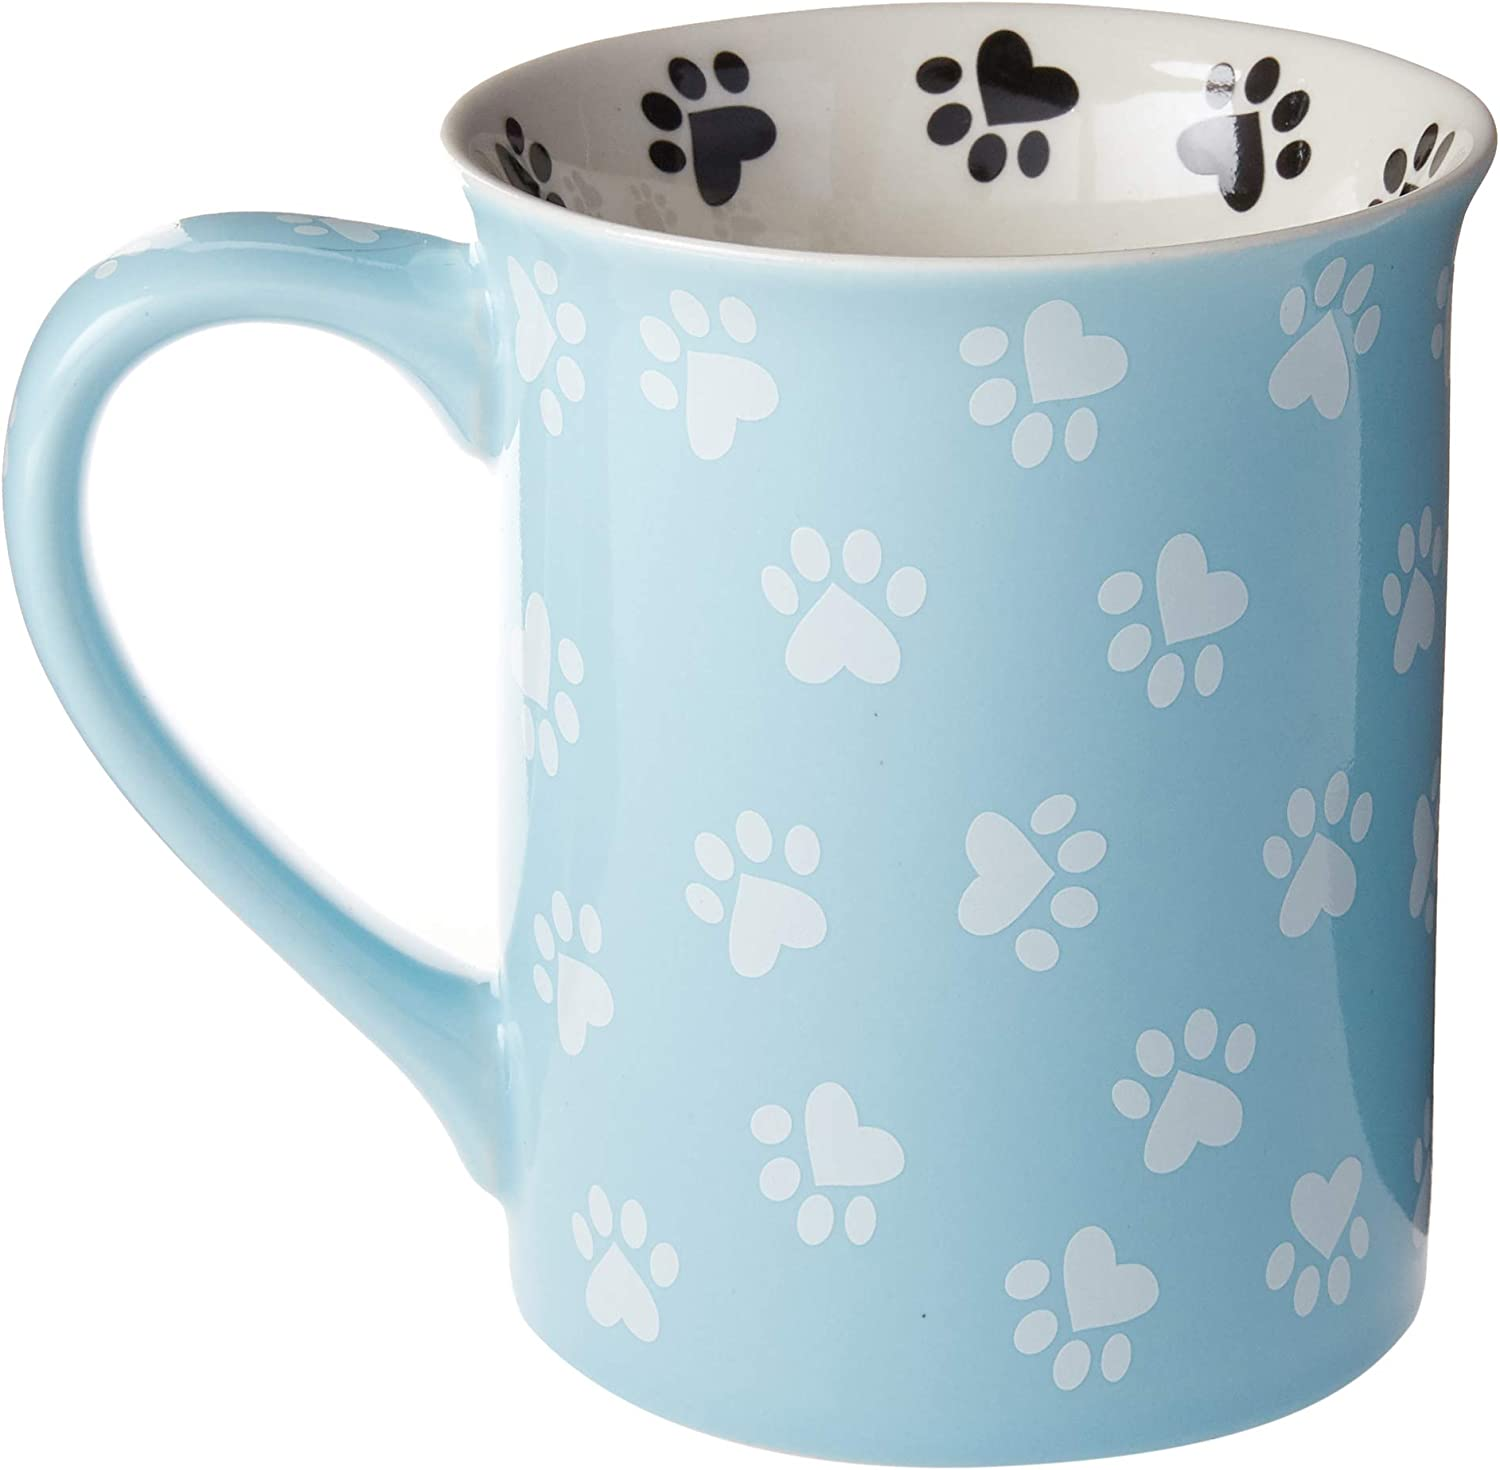 Our Name is Mud 4026109 - Taza con Texto en inglés, Color Azul: Amazon.es: Hogar